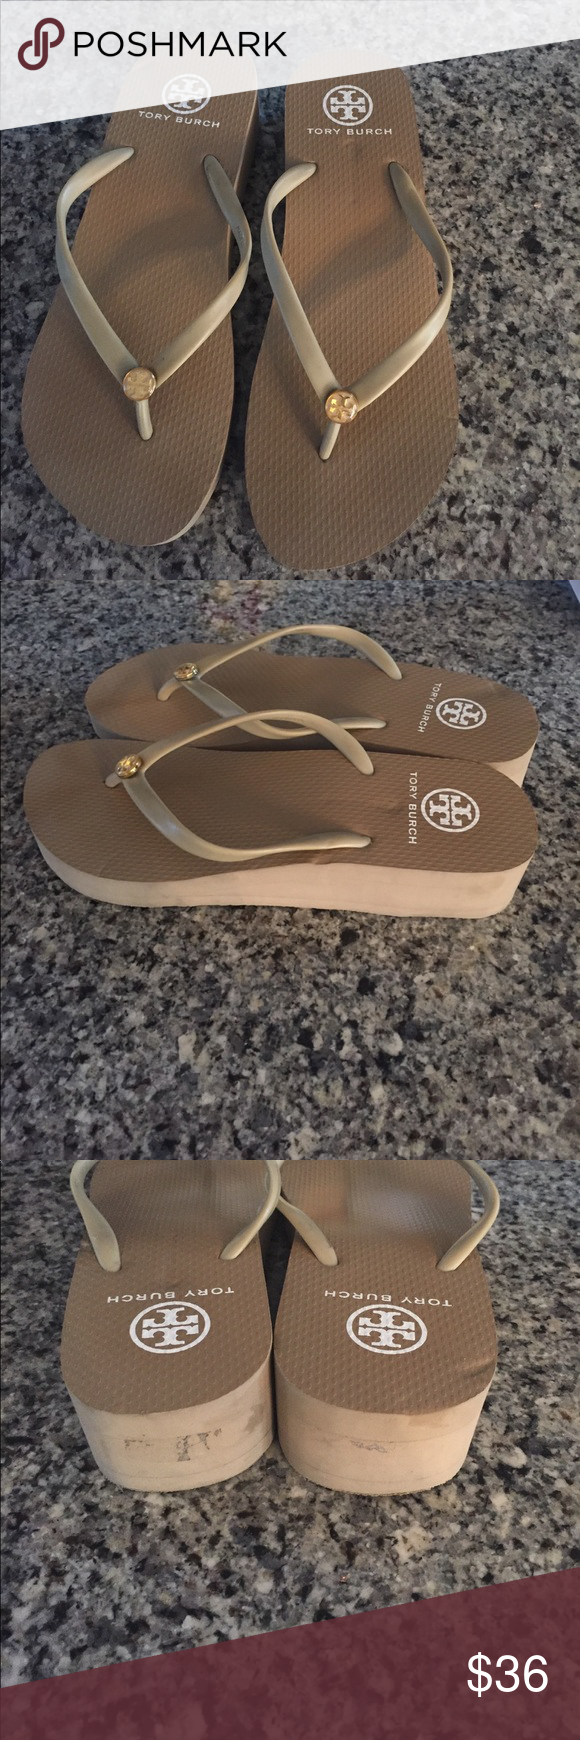 52b349c34d Tory Burch Flip Flops used Tan Tory Burch bought from another  Posher-thought were an 8.5. Wedge heel. Price firm to cover my own purchase  and shipping ...